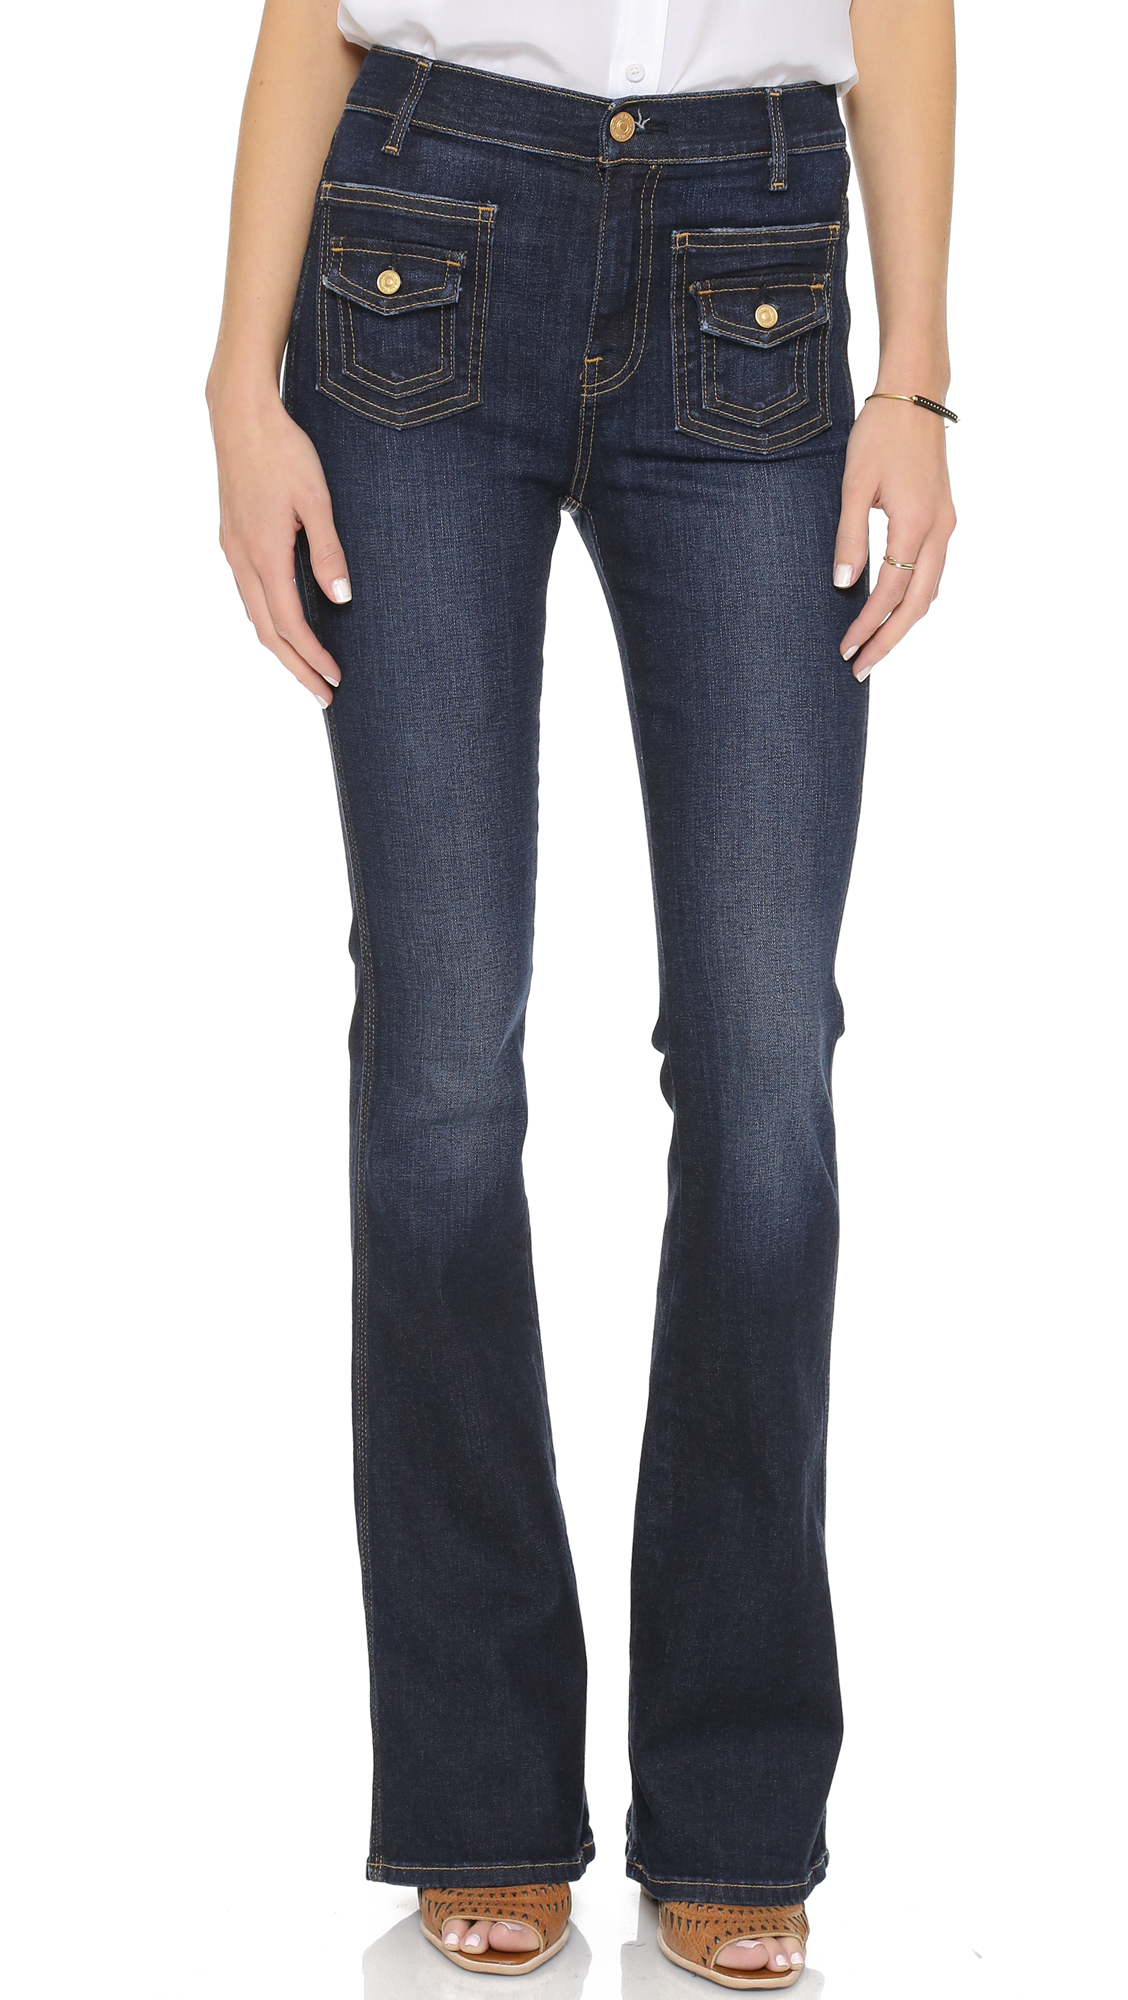 7 For All Mankind Vintage Trouser Jeans | 15% off first app ...